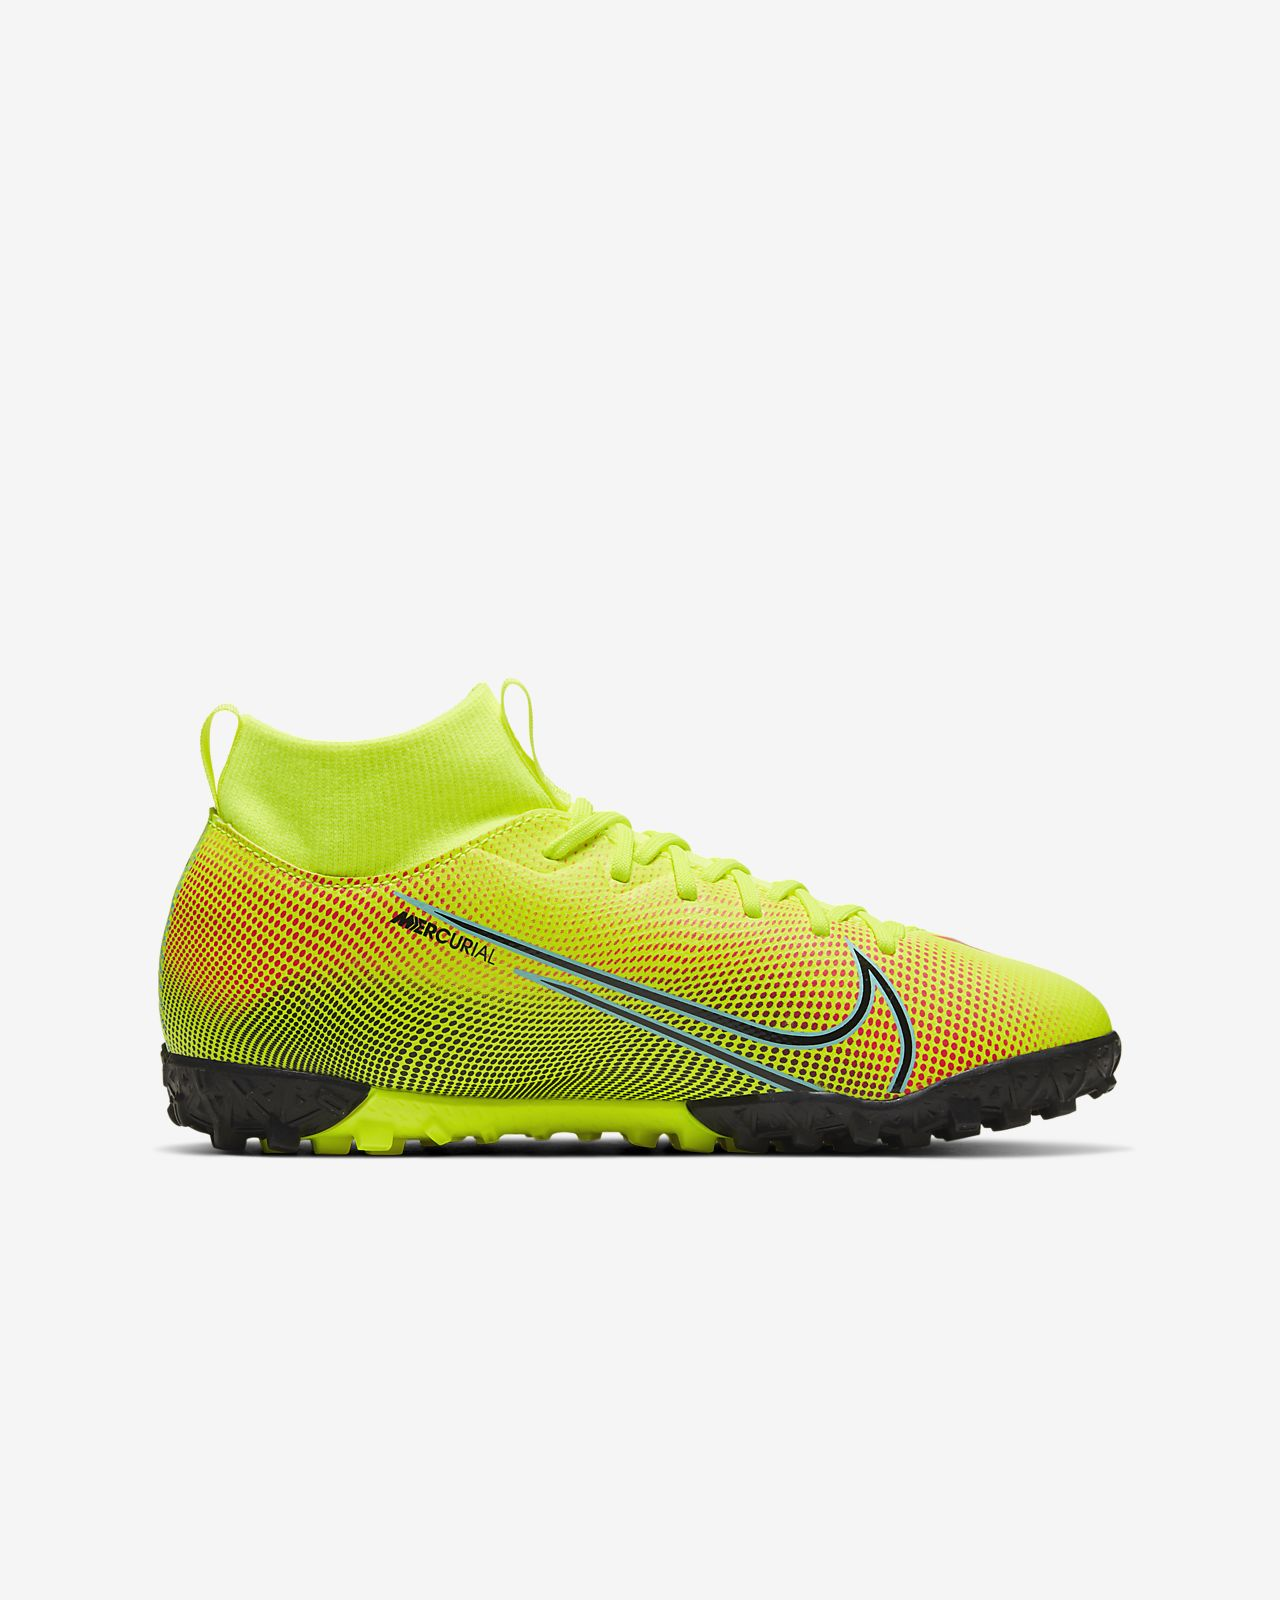 Nike Jr. Mercurial Superfly 7 Academy MDS TF fotballsko for grusturf til småstore barn